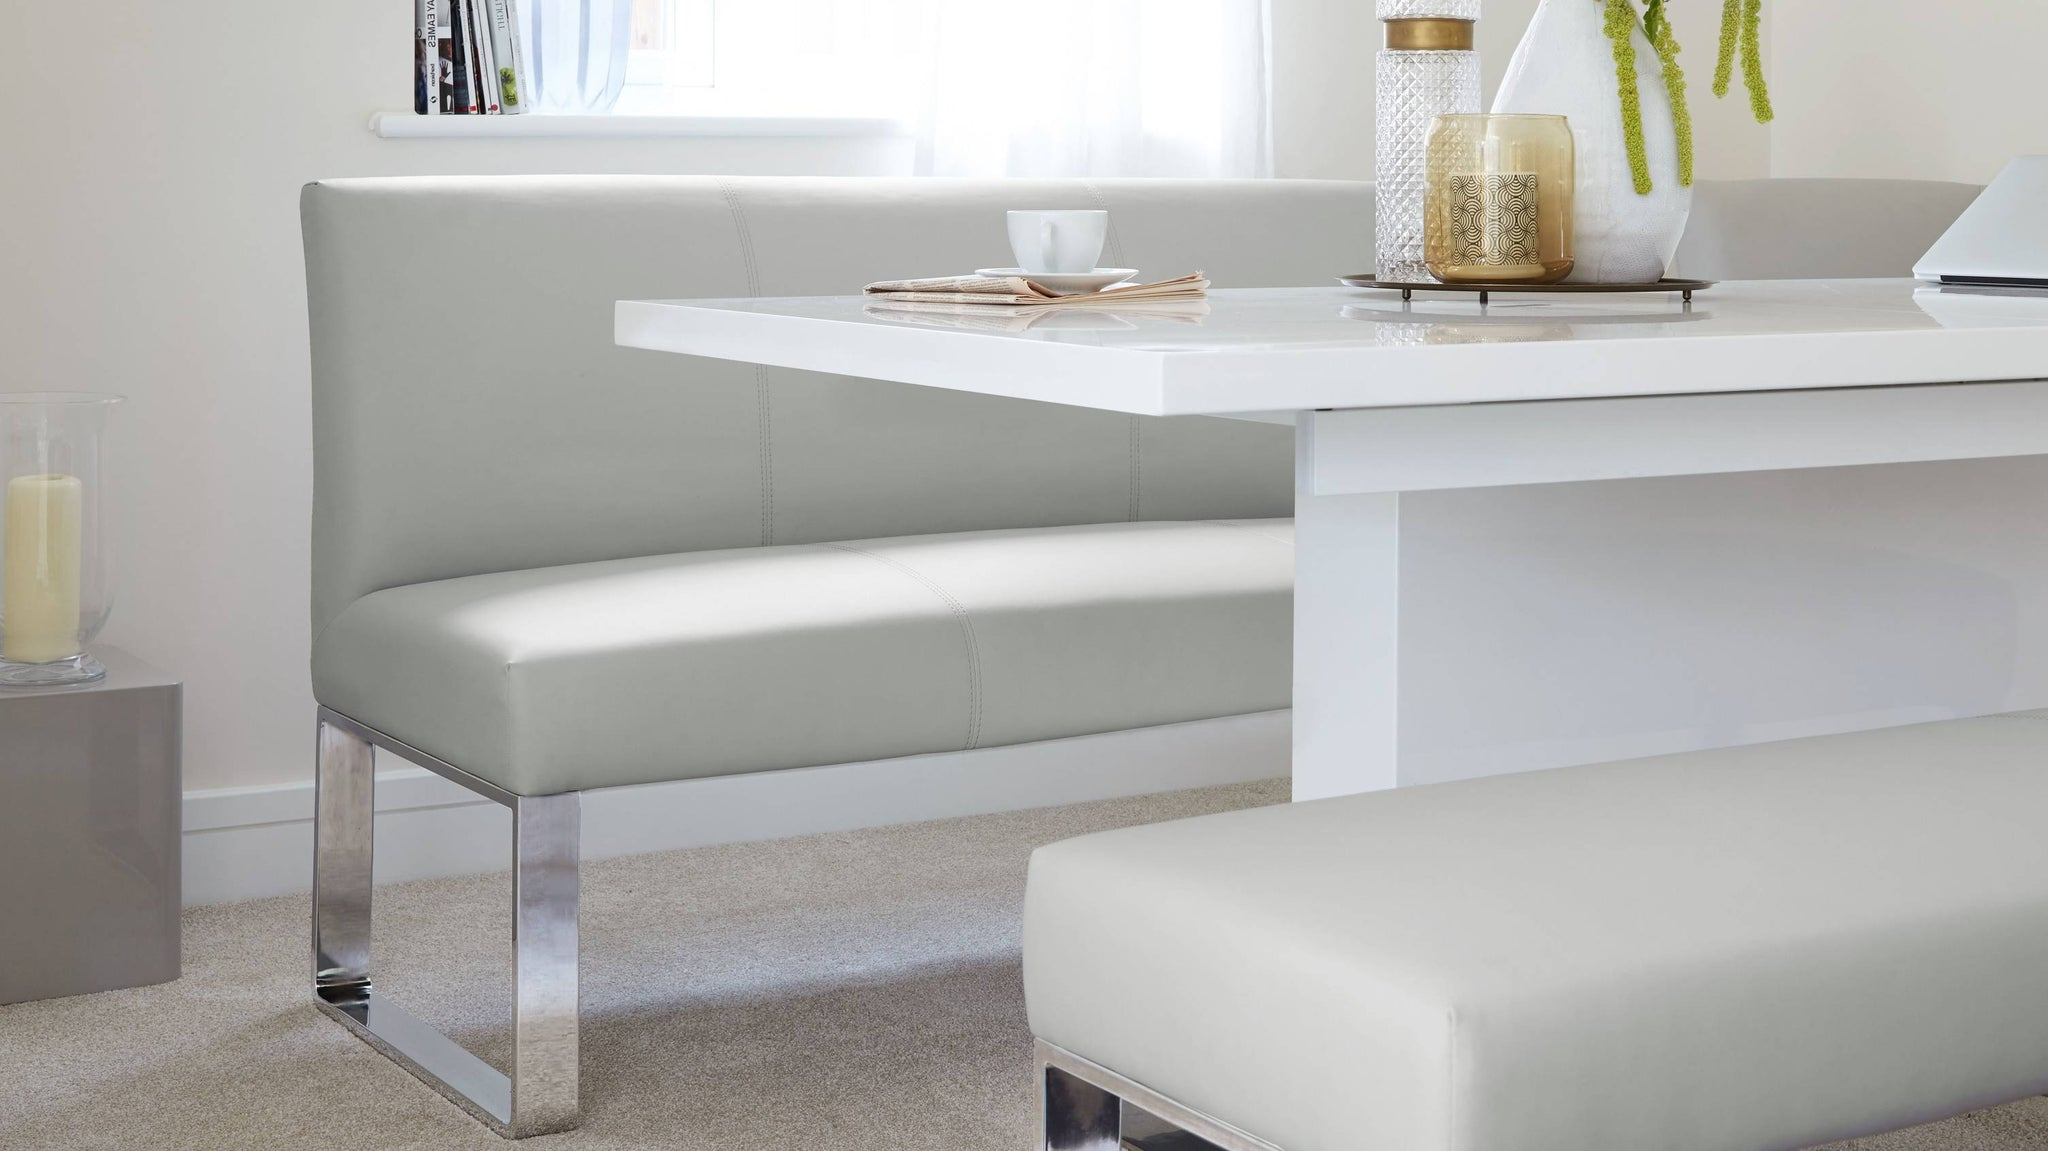 Large family 6-8 seater dining table